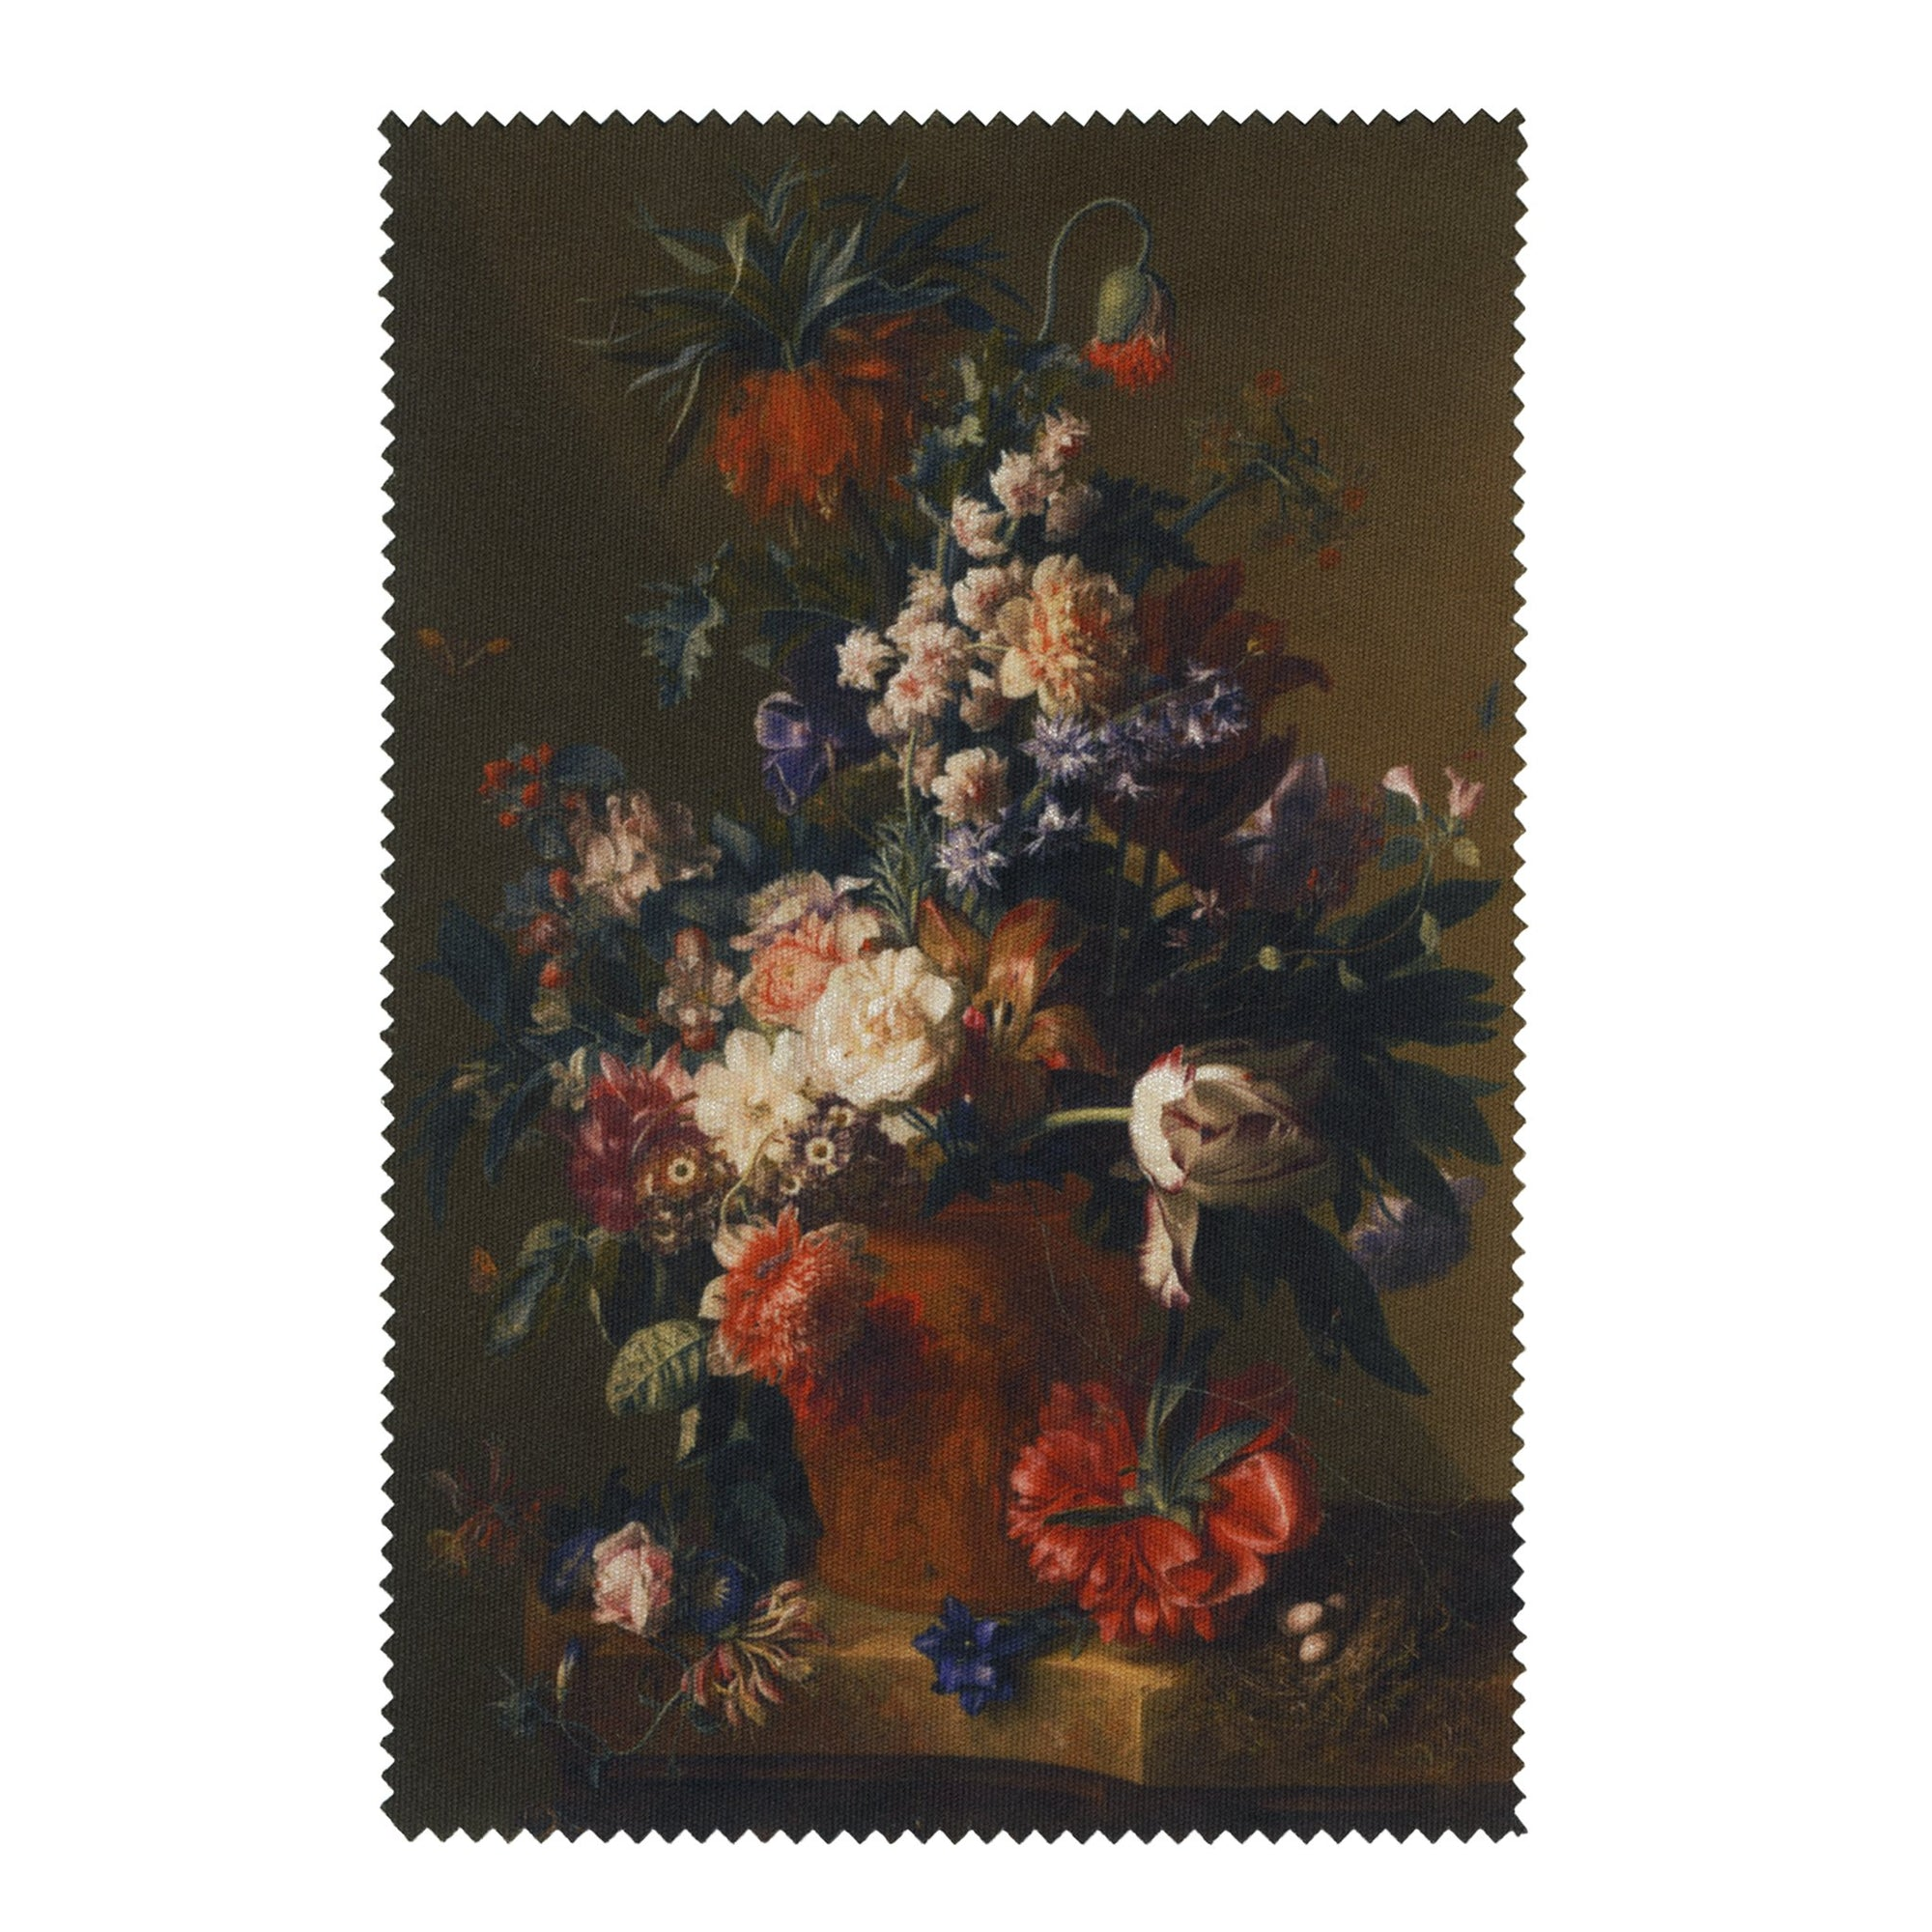 Van Huysum - <i>Vase of Flowers</i> - Lens Cloth + Postcard